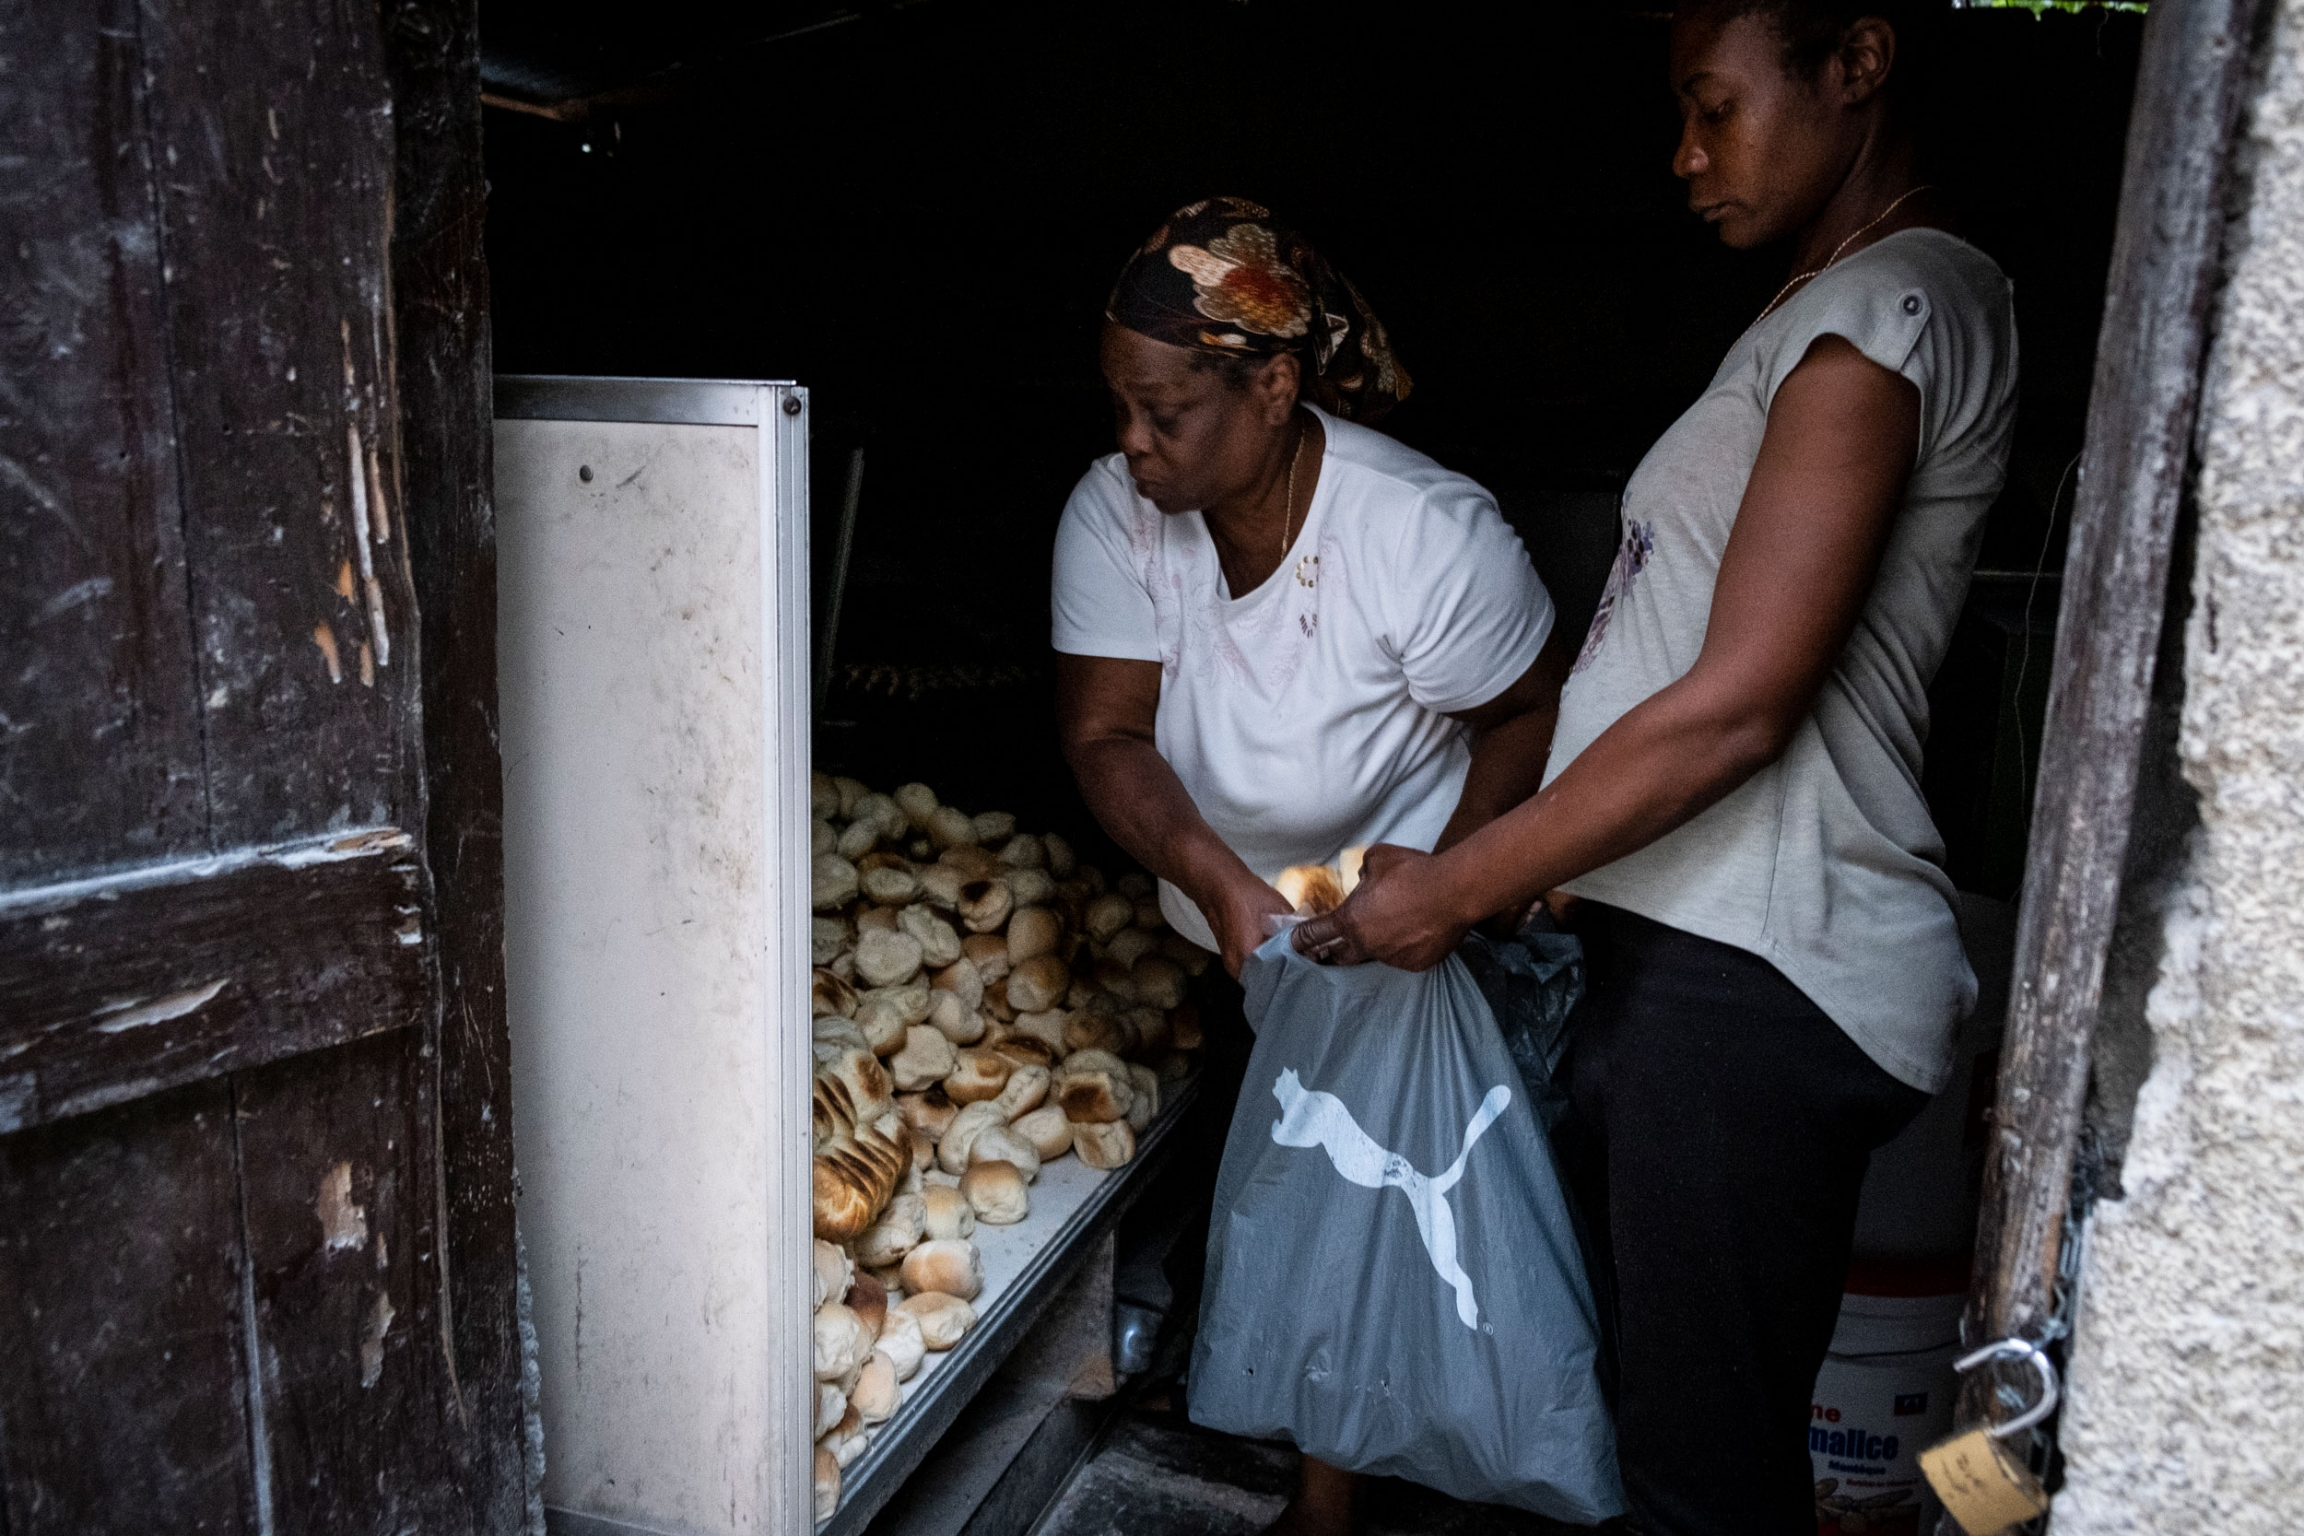 A woman is shown leaning over helping another woman load with biscuits into a plastic bag.